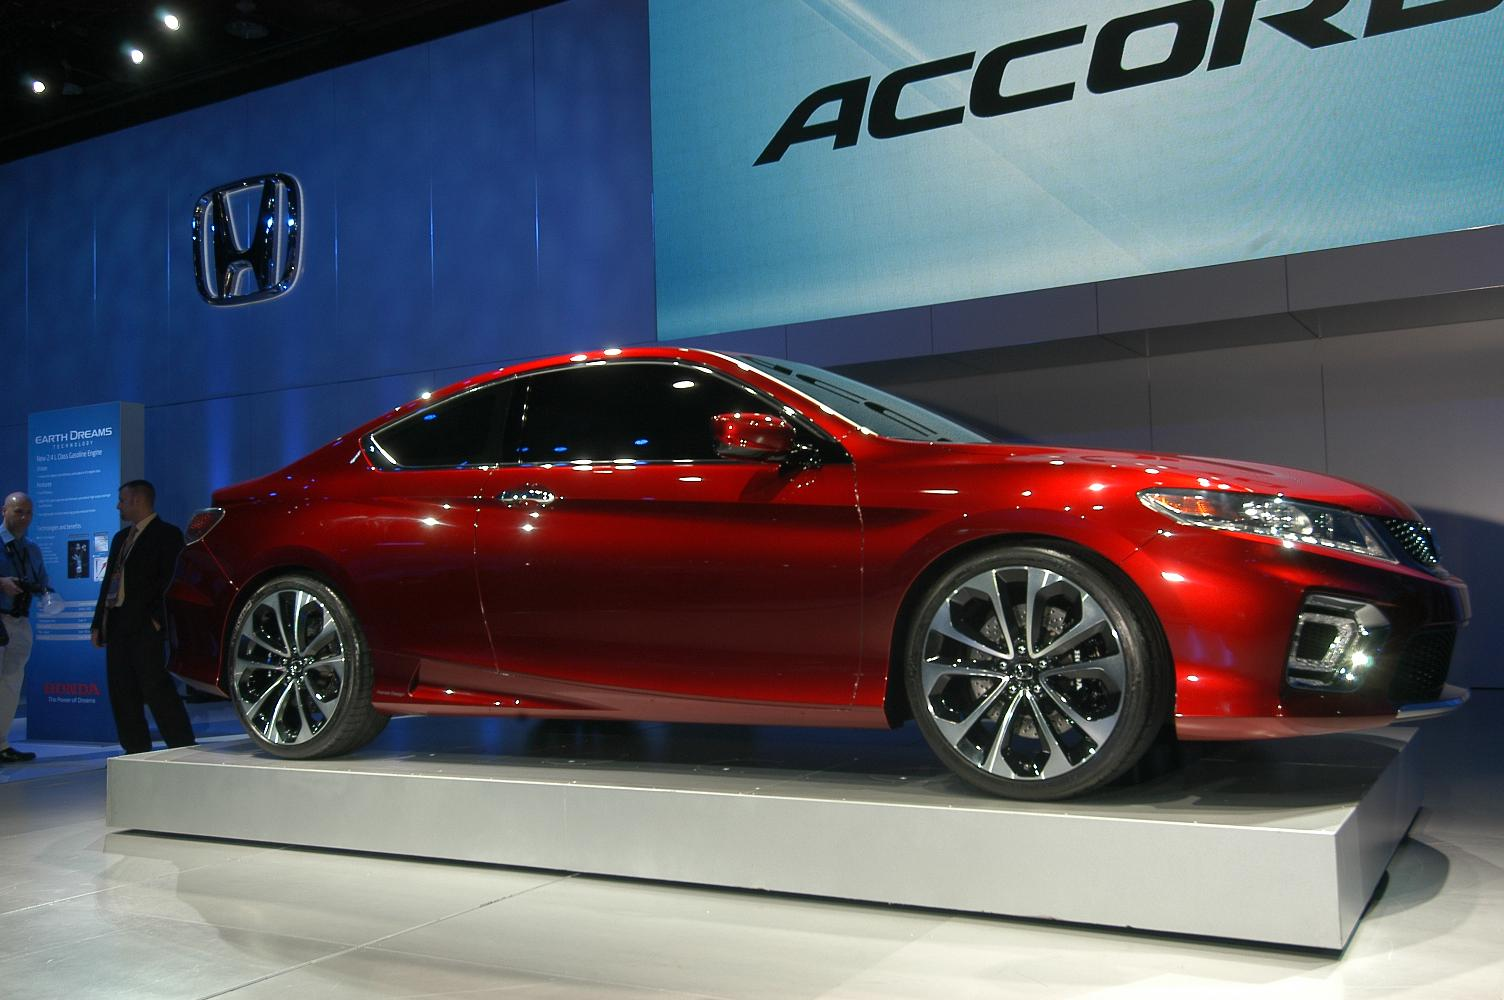 Honda Accord NAIAS 2012 2